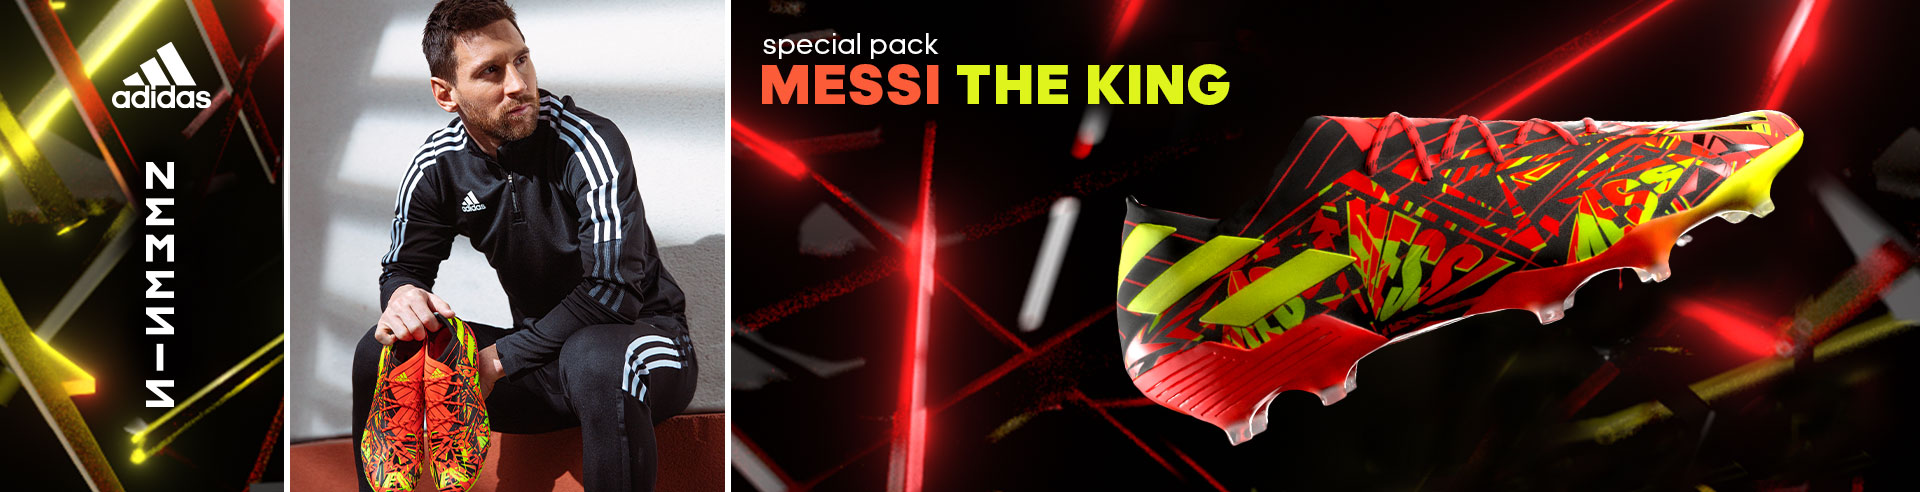 ADIDAS NEMEZIZ MESSI THE KING MARZO 2021